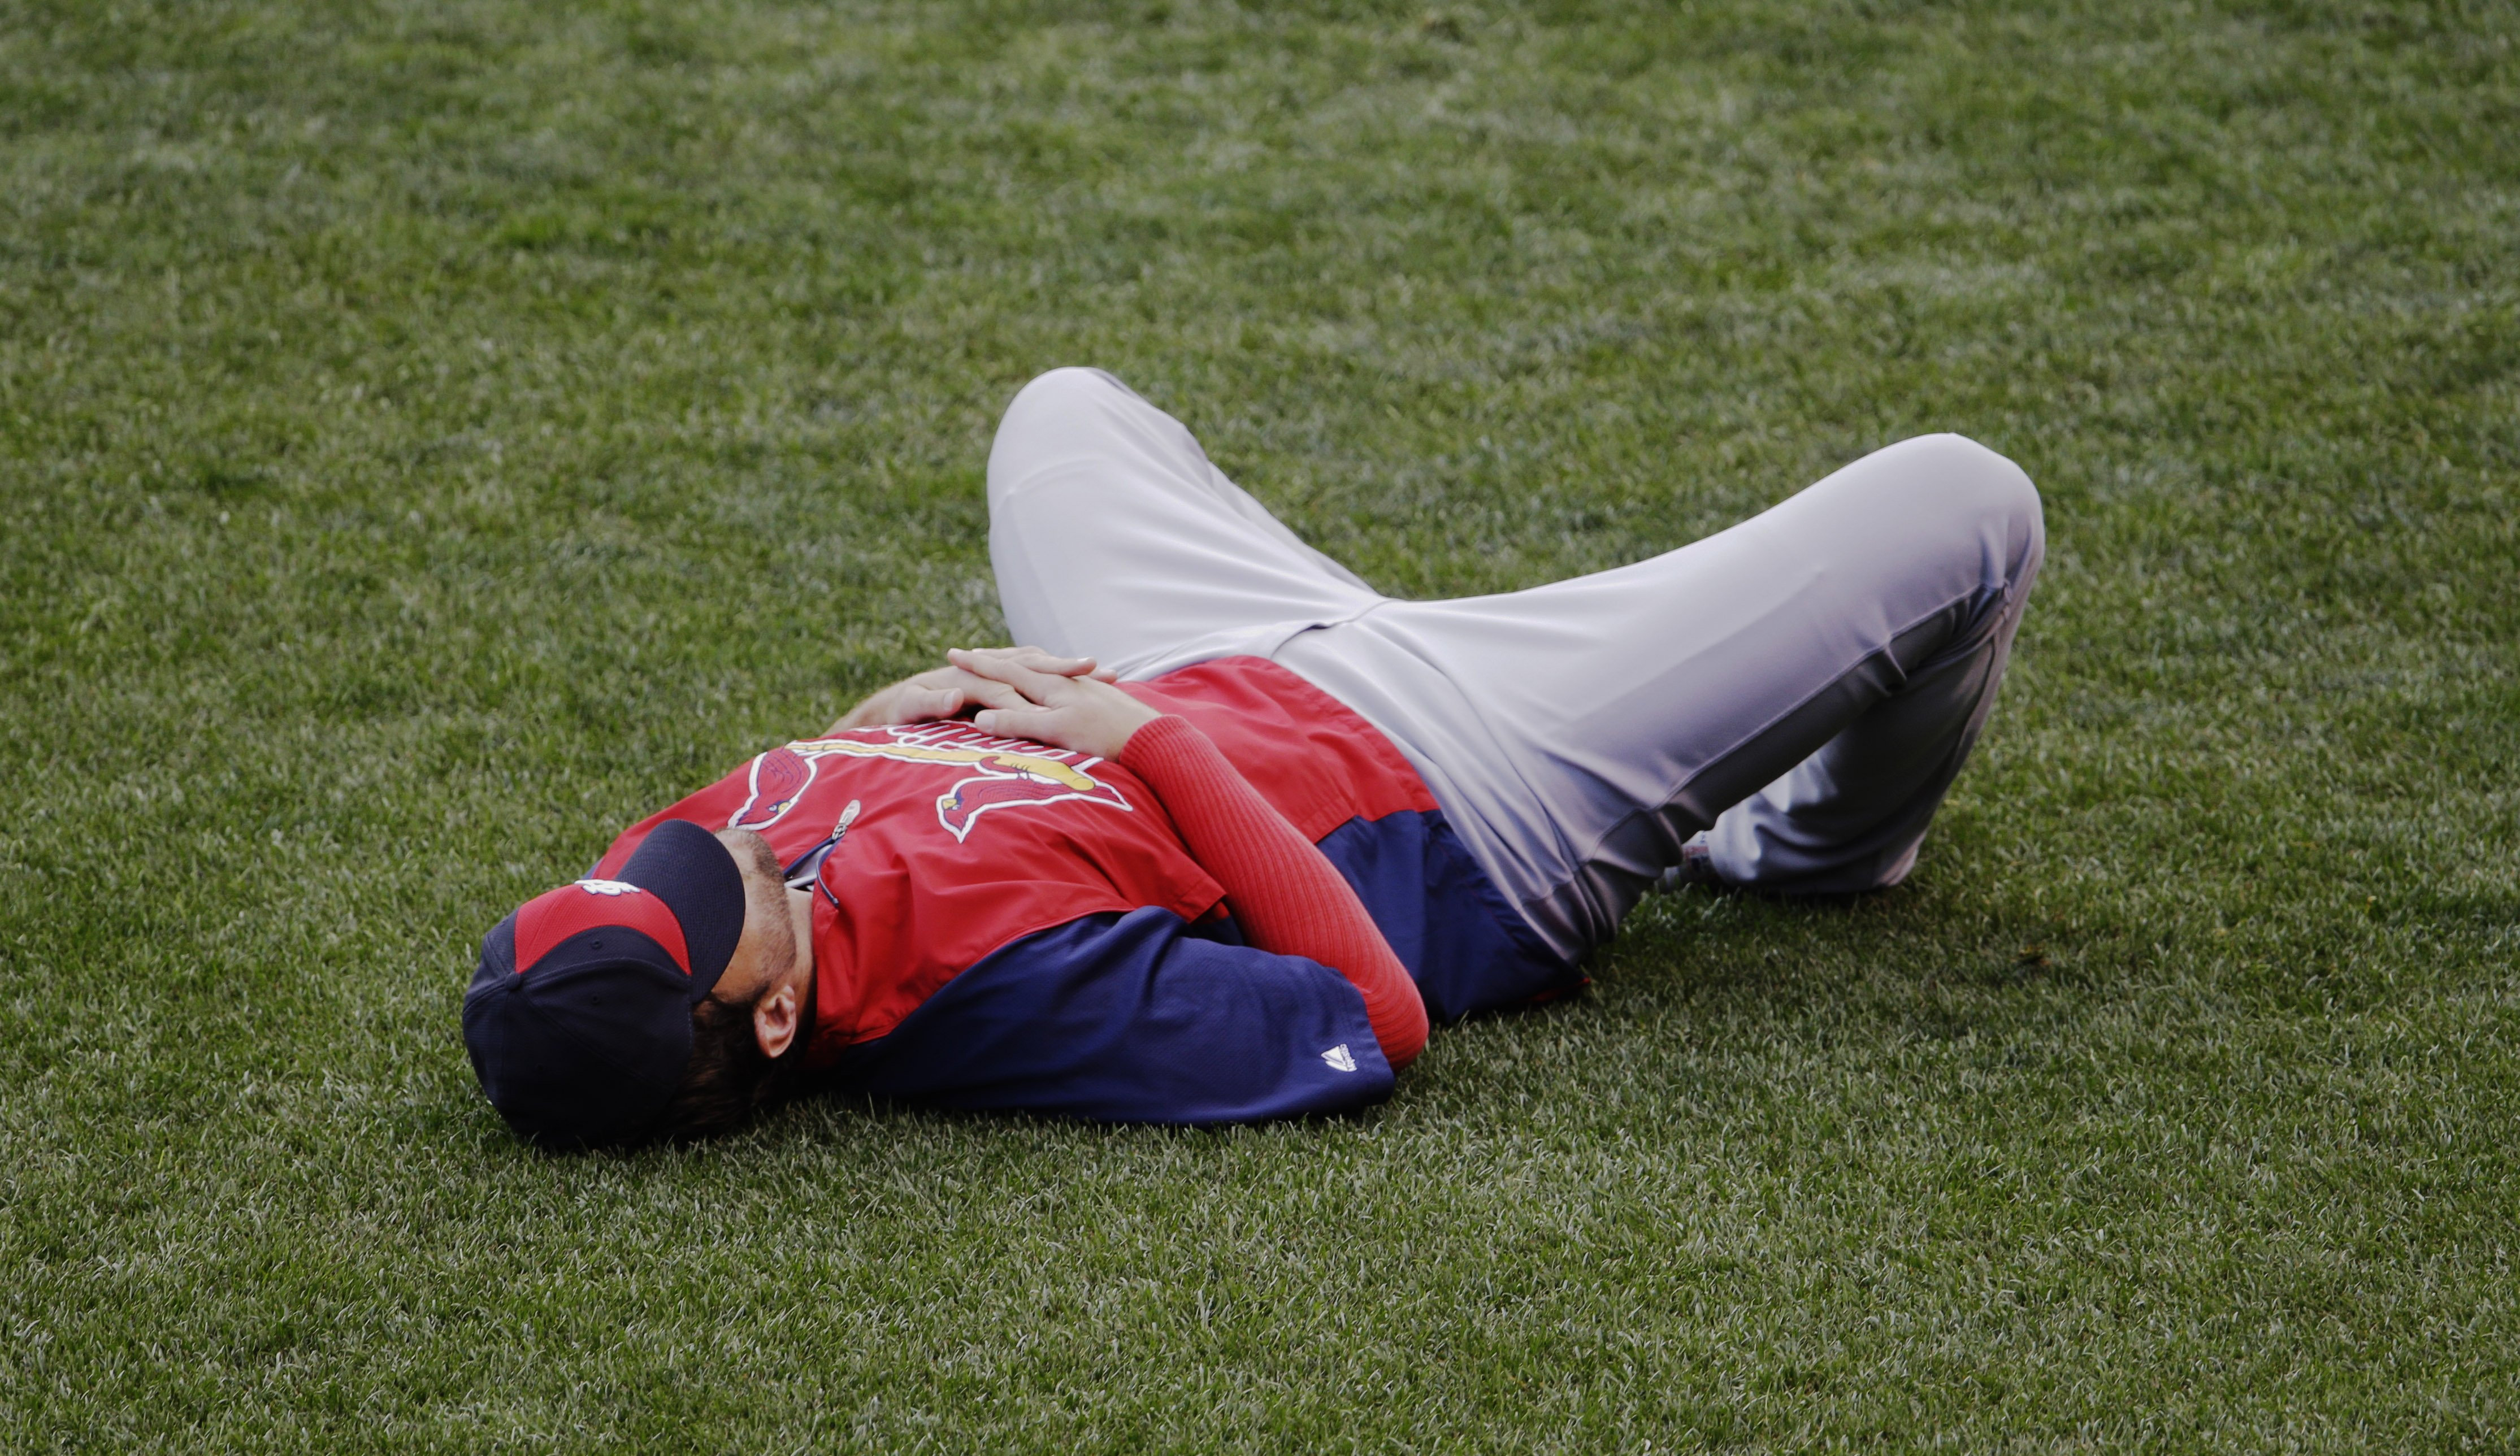 National League starting pitcher Adam Wainwright rests in the outfield before the MLB All-Star baseball game, Tuesday, July 15, 2014, in Minneapolis.